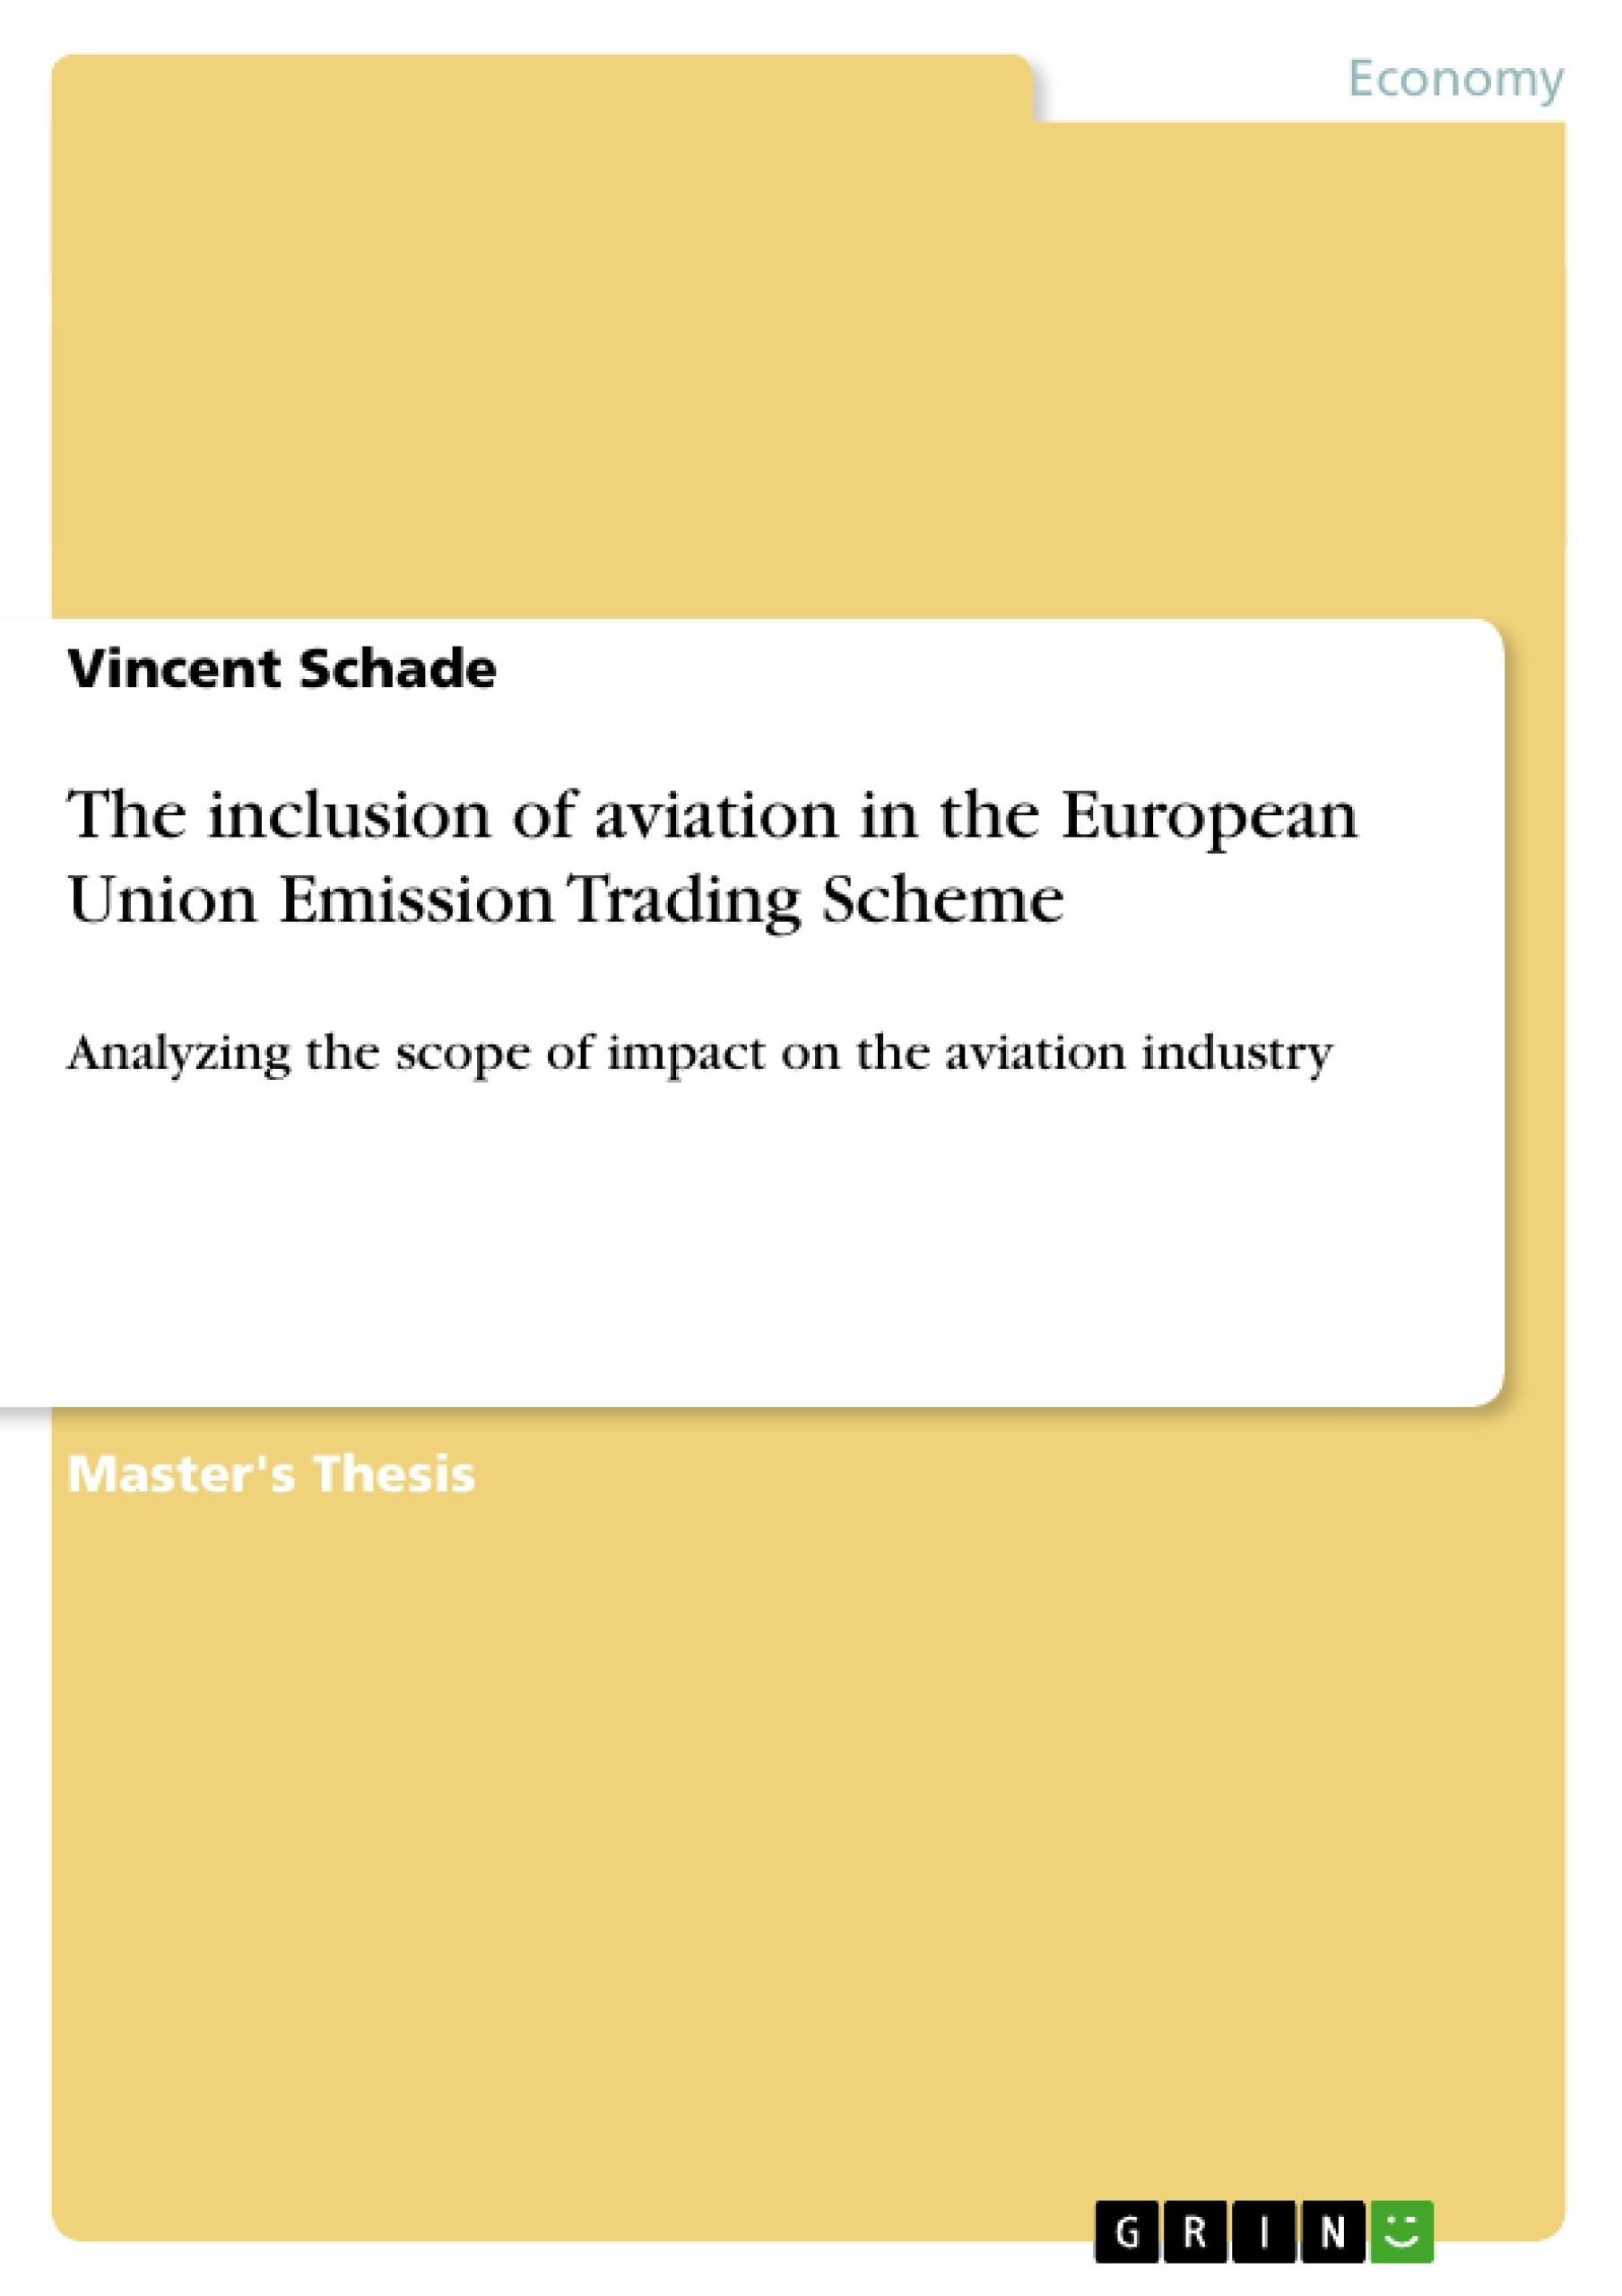 Title: The inclusion of aviation in the European Union Emission Trading Scheme